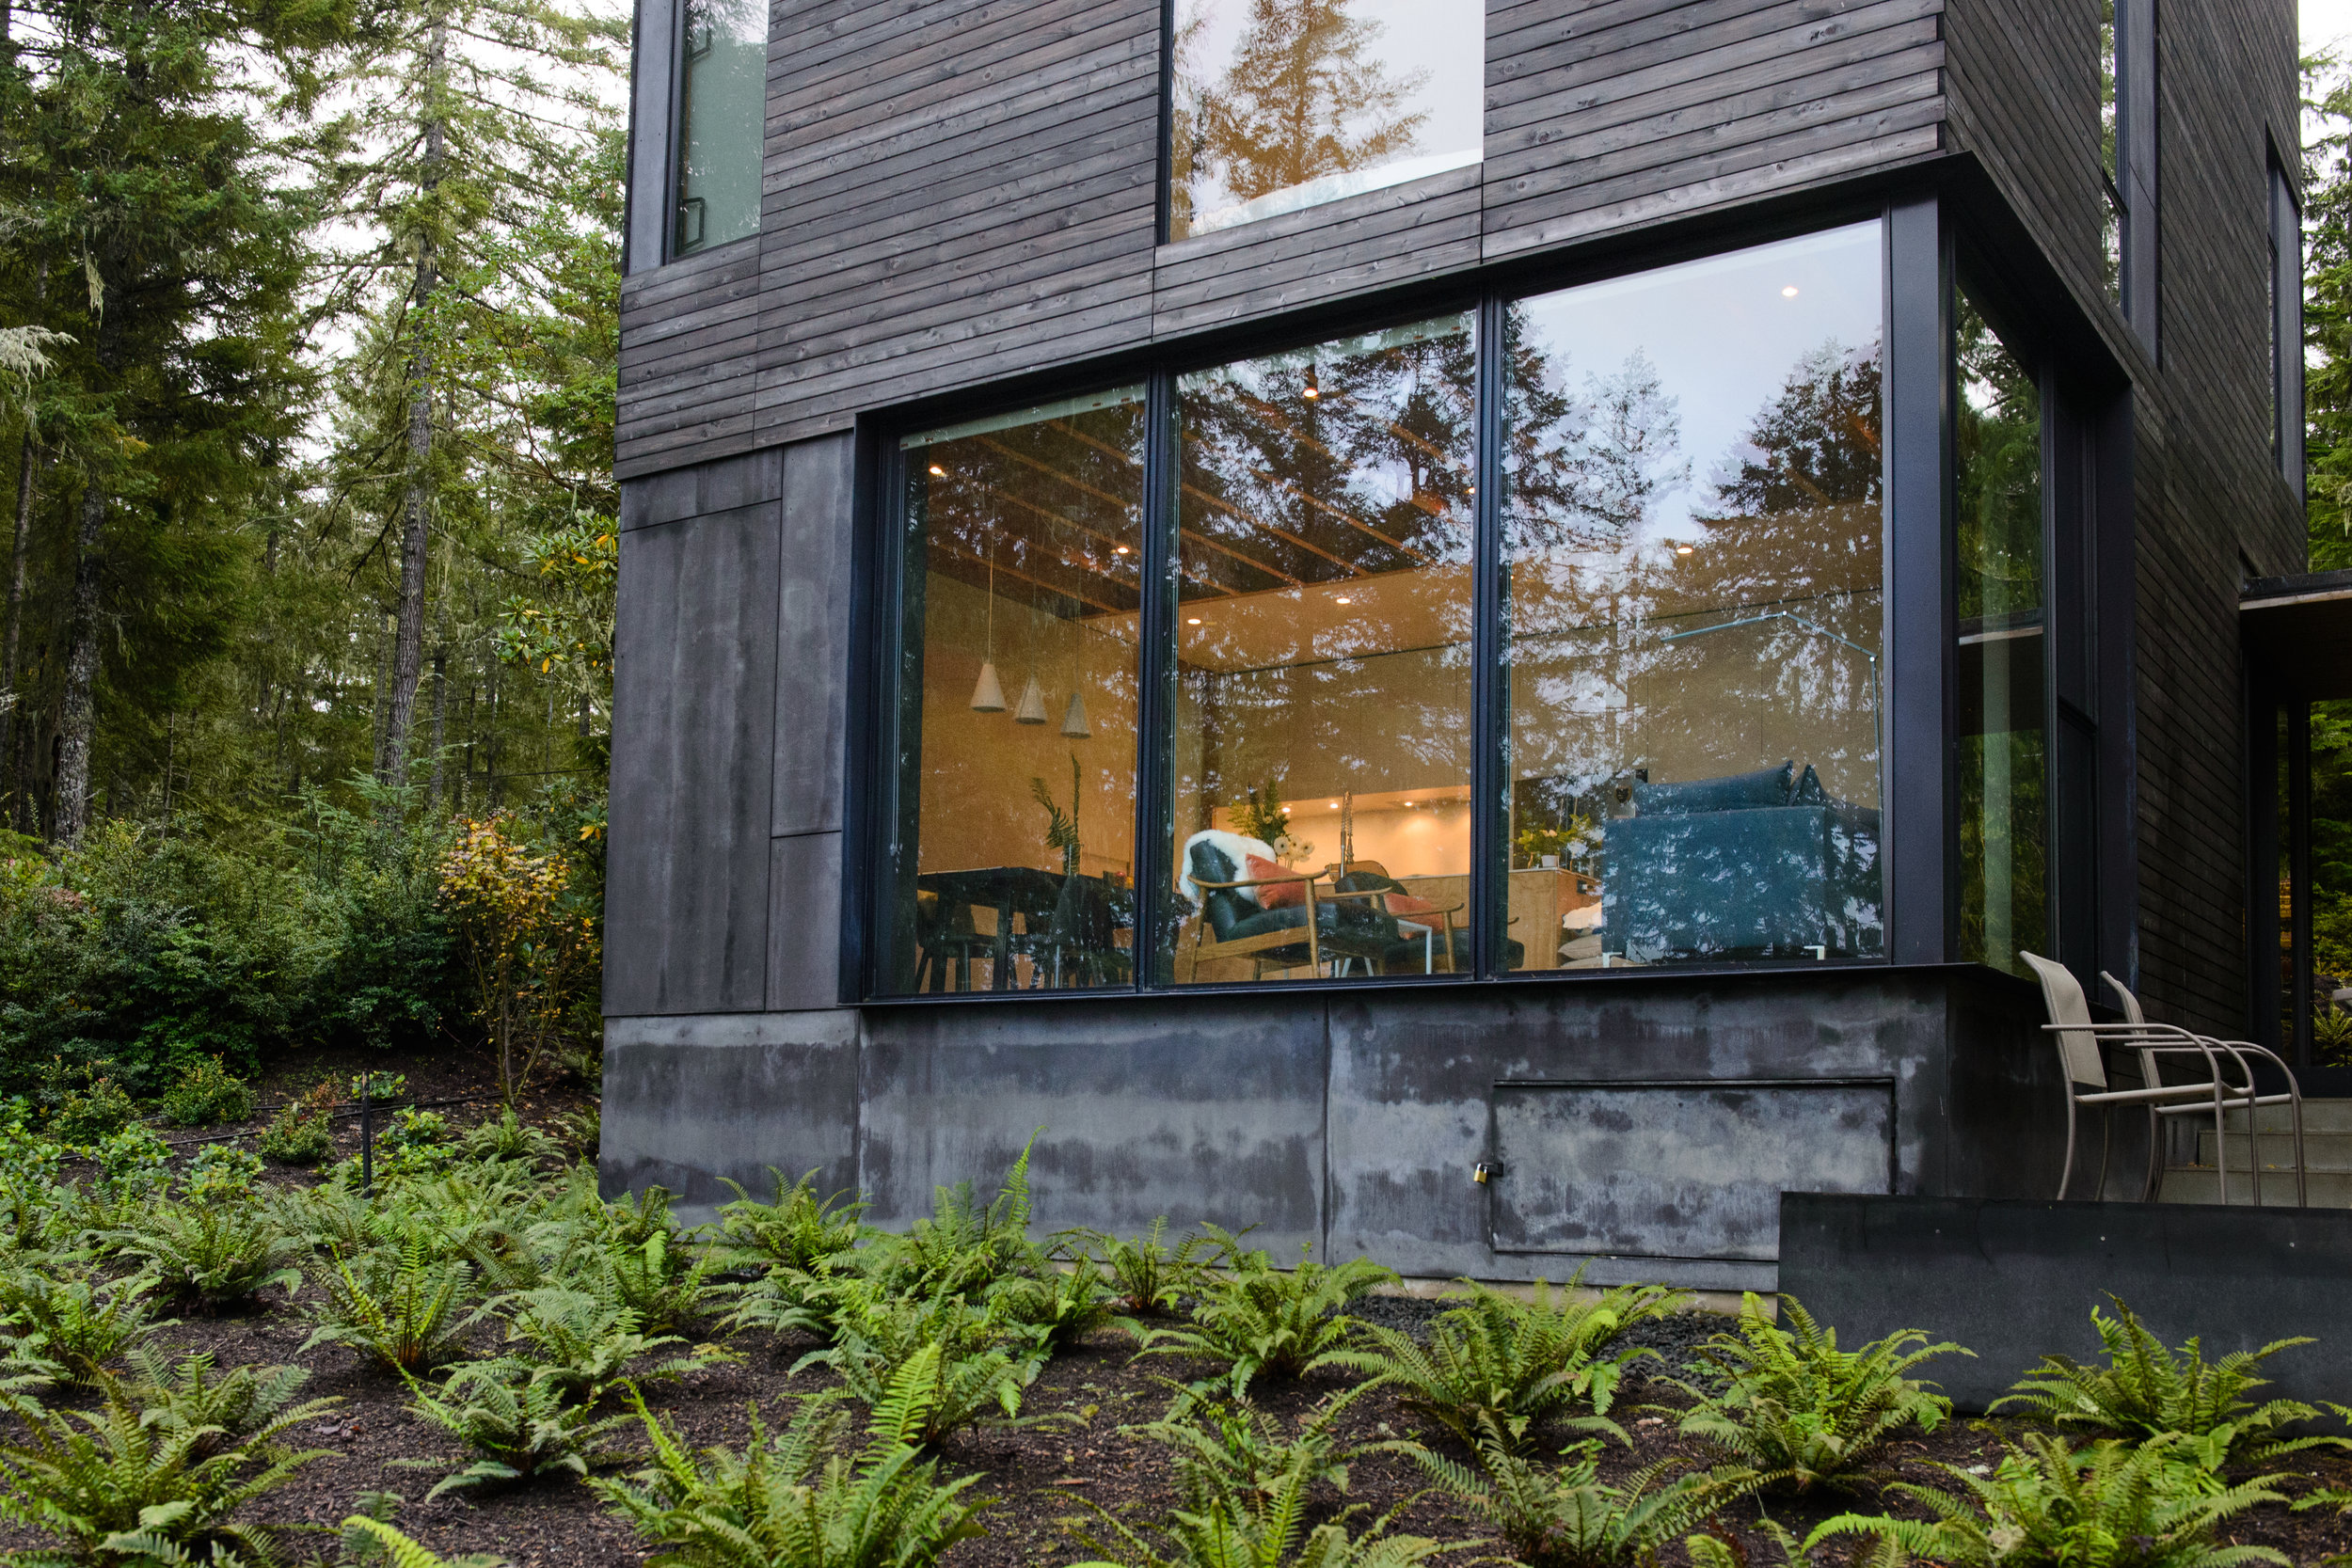 Exterior view of the tiny cabin- views of the kitchen and living area are visible from the fern covered landscape.